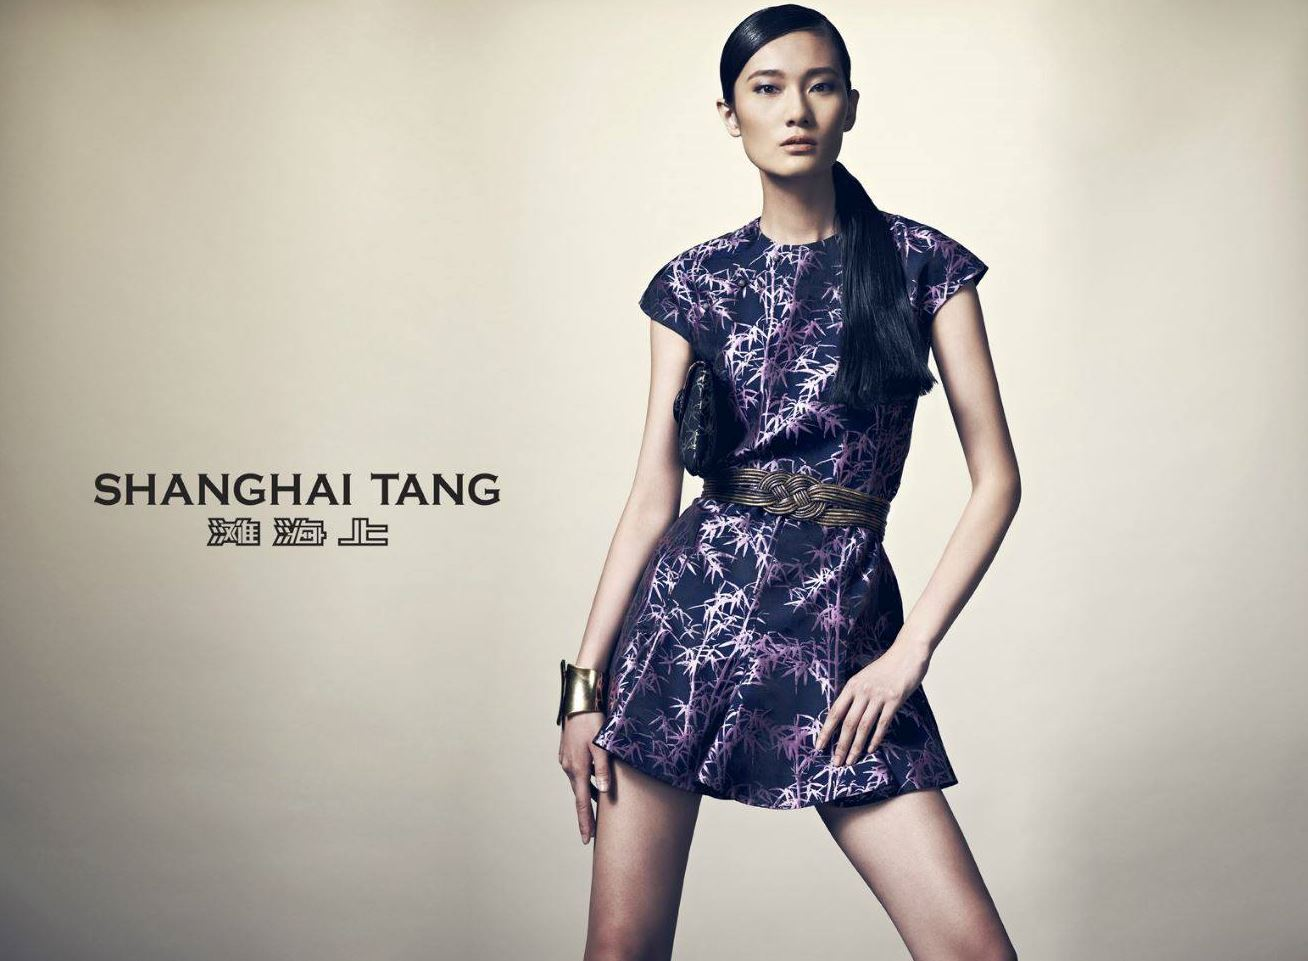 shanghai tang review Rose silk is a feminine perfume by shanghai tang the scent was launched in 2015 and the fragrance was created by perfumer carlos benaim.